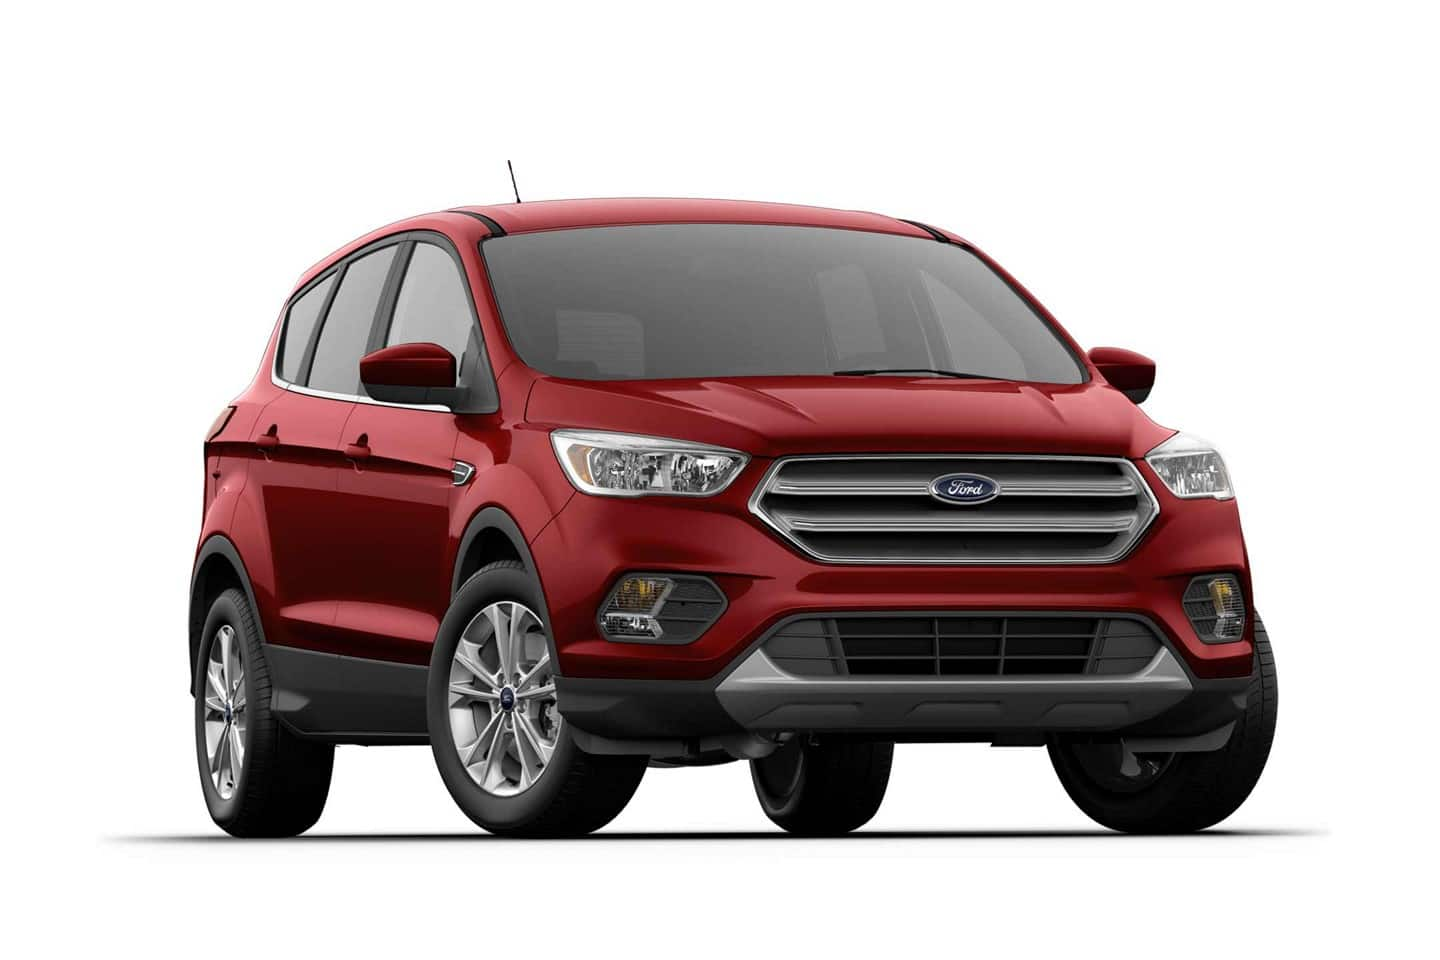 56 All New 2019 Ford Escape Reviews